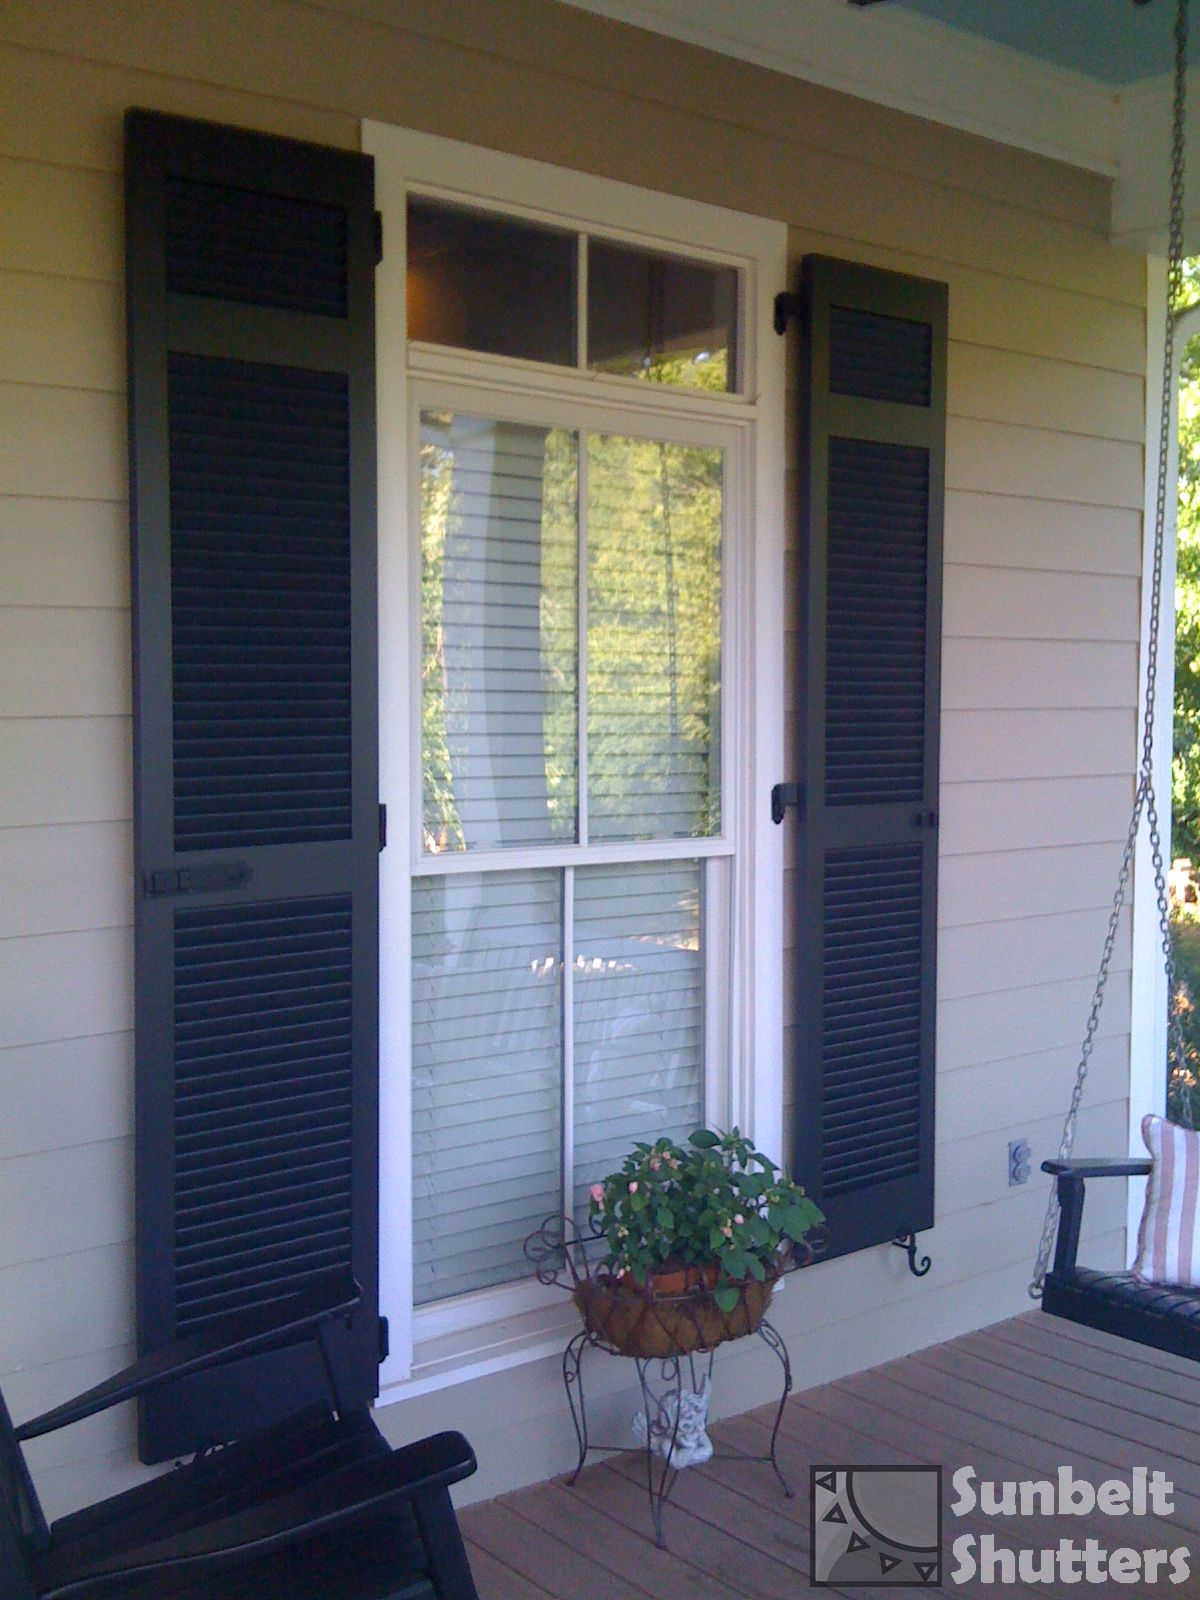 will the custom shutter below decorative your information respond interest on request and shutters fill form hardware decor sincerely we company a quote in img our please appreciate with